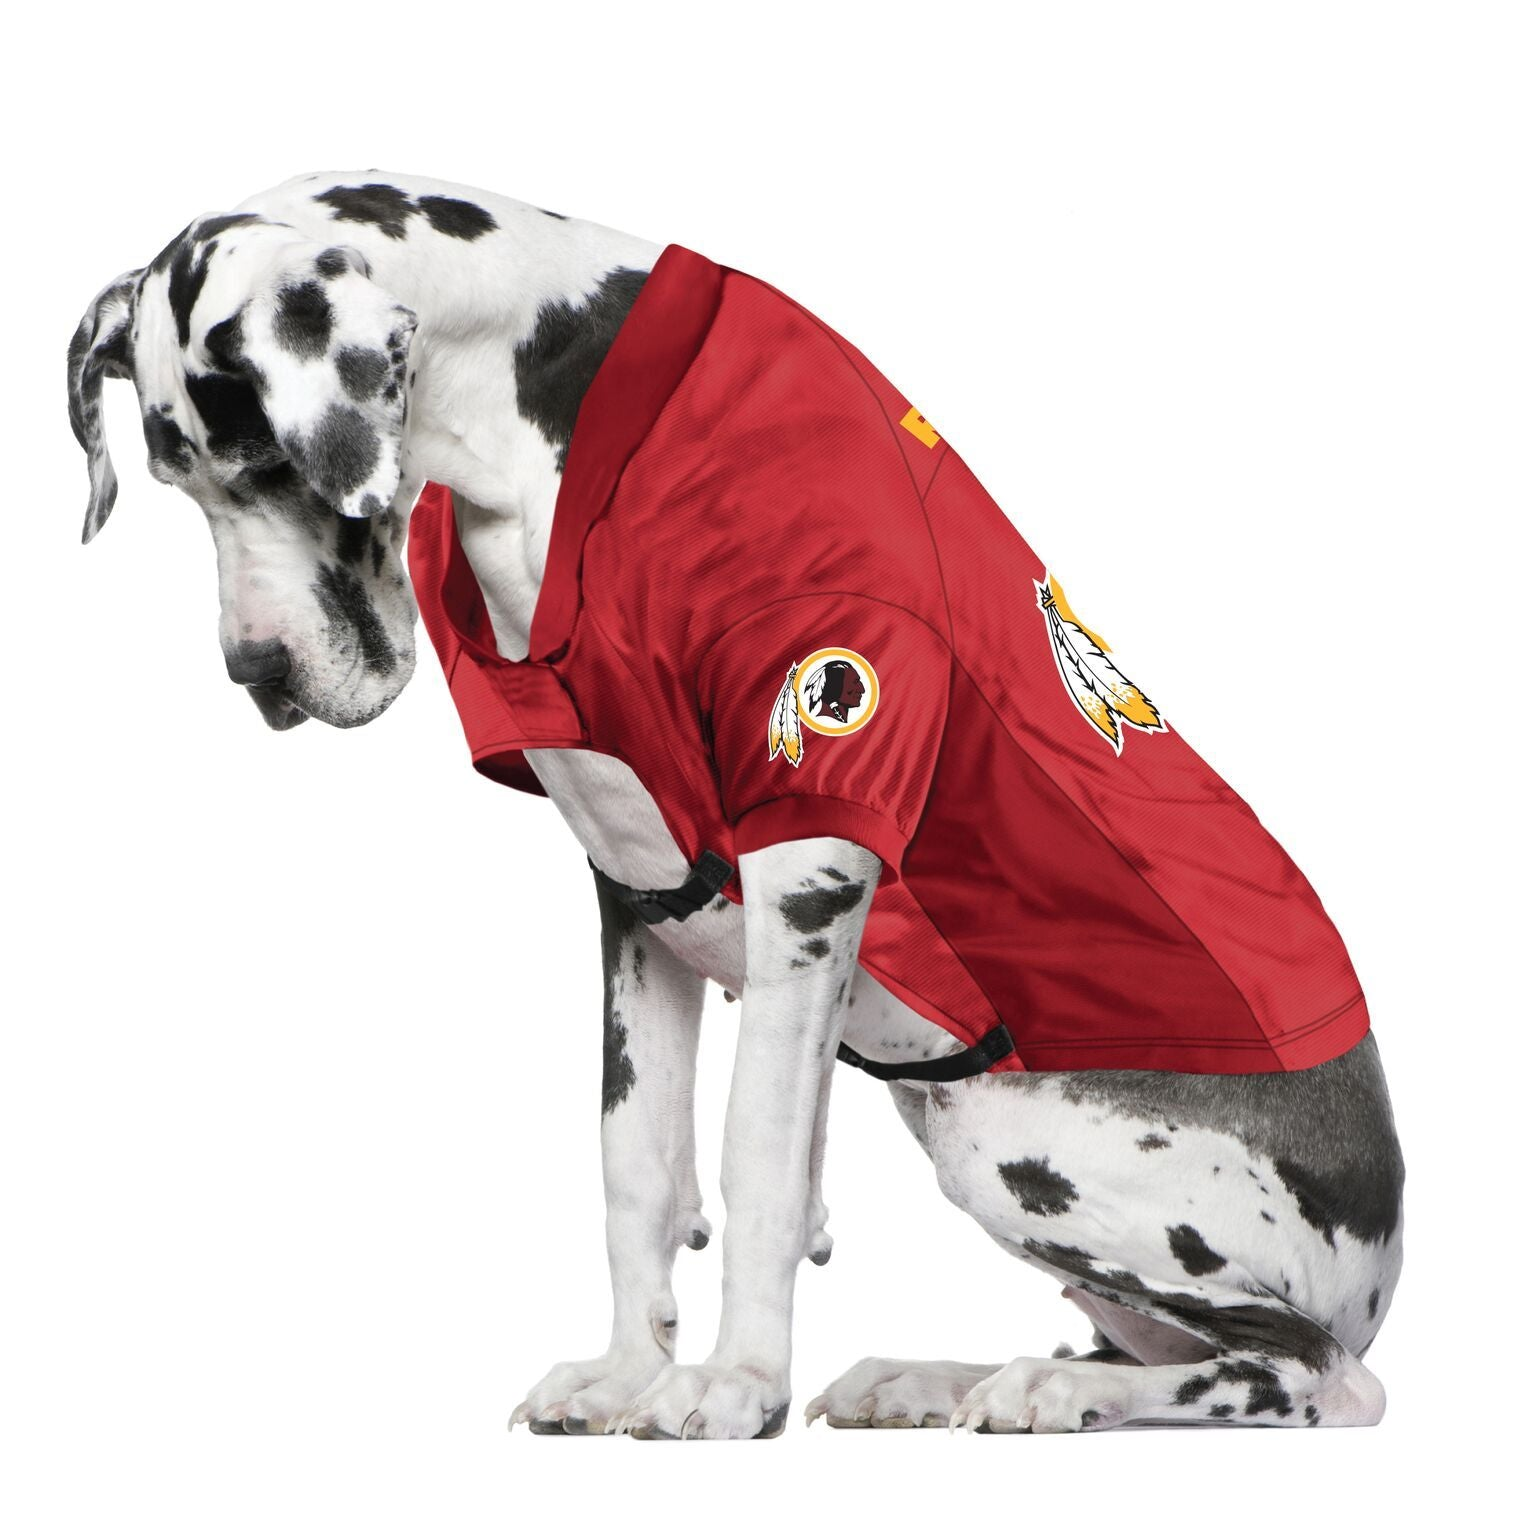 Redskins Fan Jersey For Your Dog